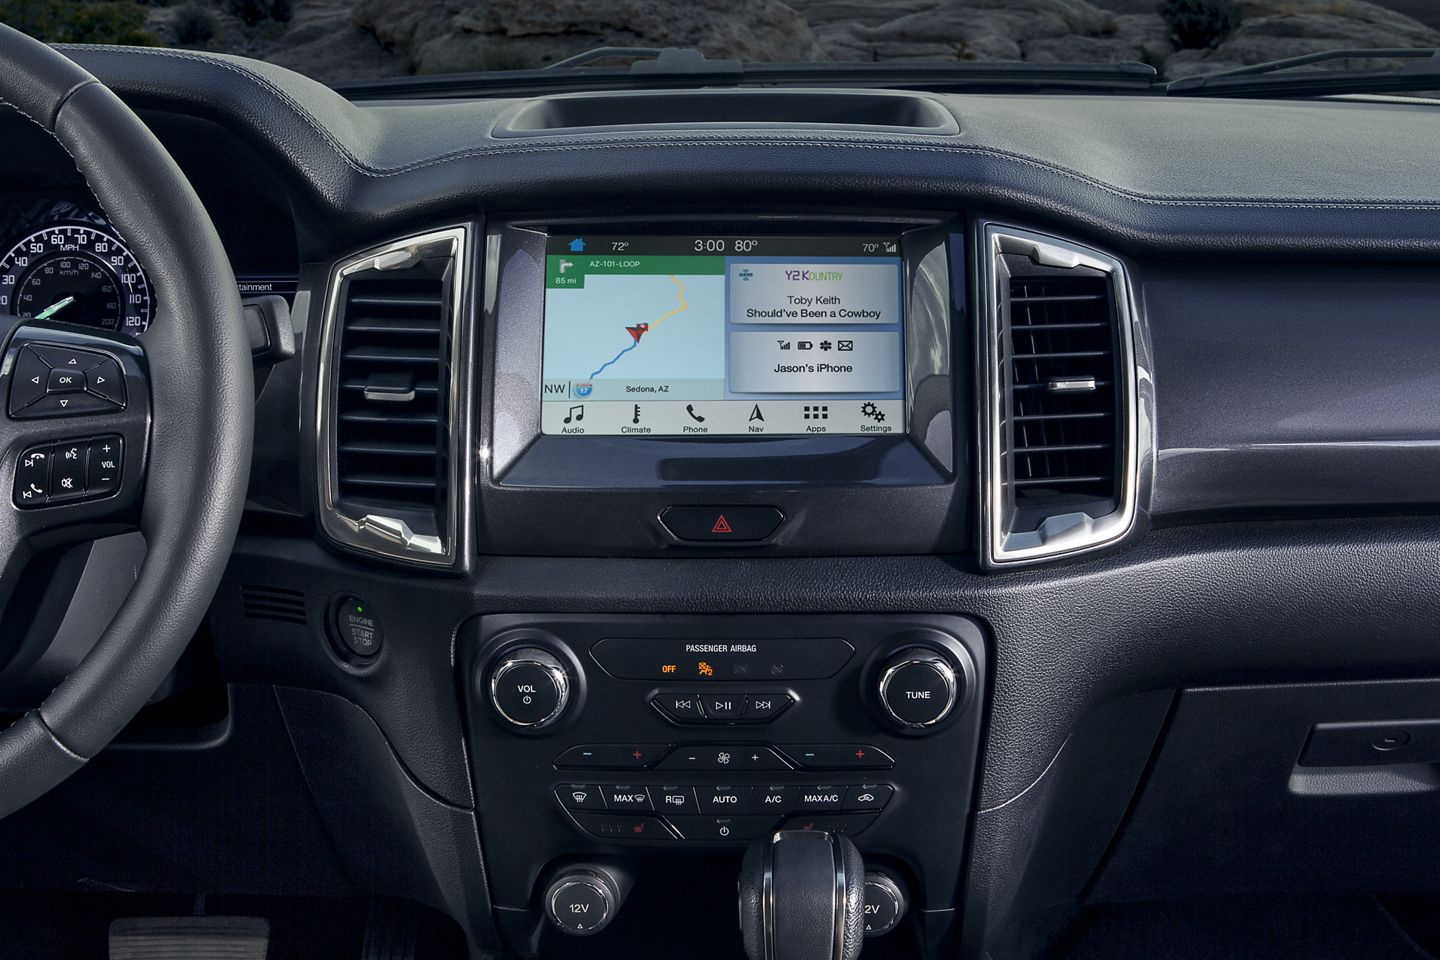 Infotainment in the 2019 Ranger